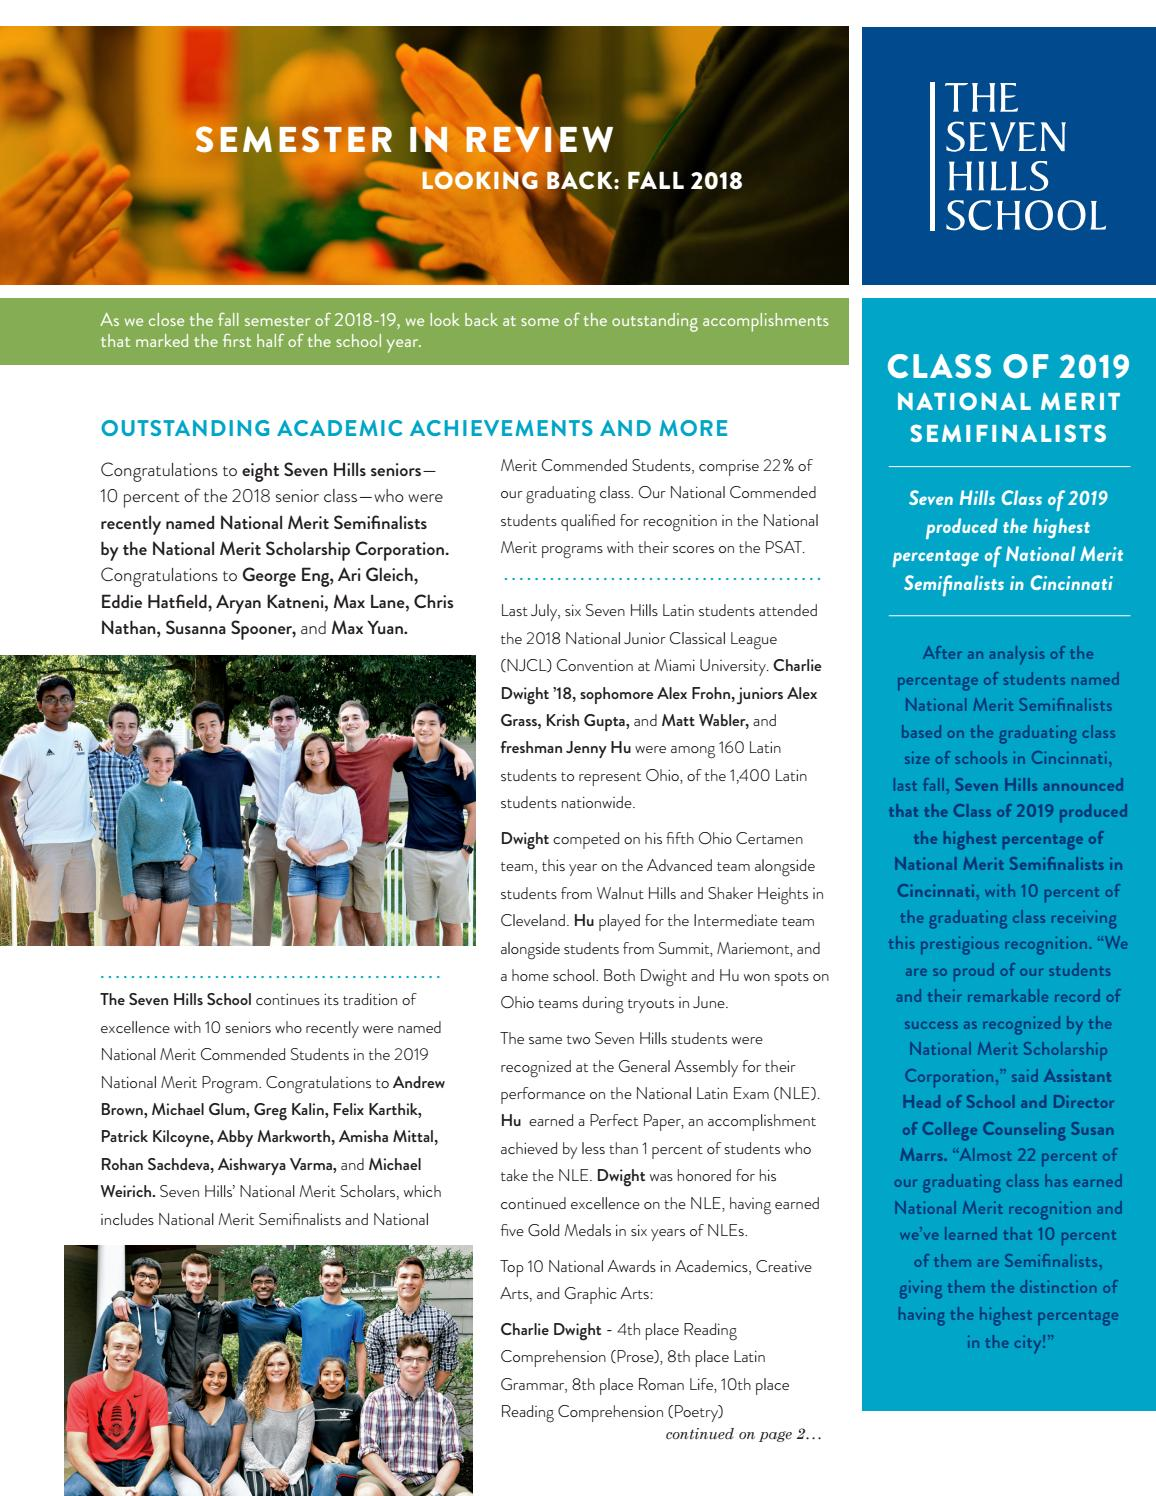 Seven Hills School Semester in Review for Fall 2018 by The Seven